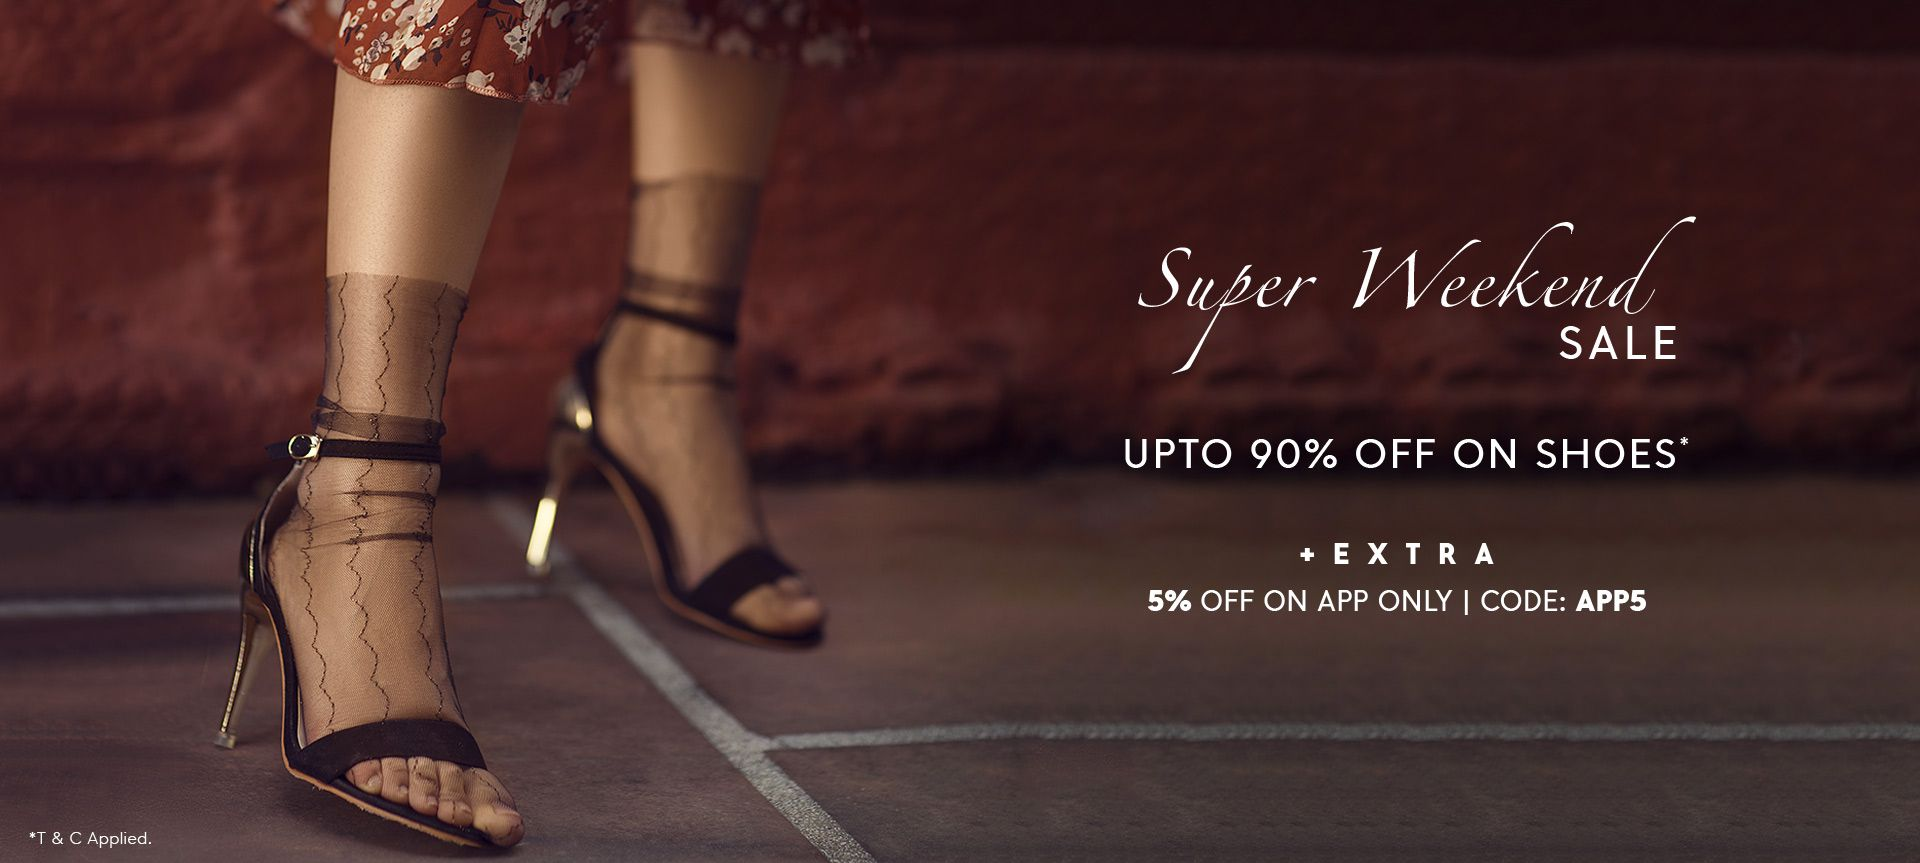 UPTO 90% OFF ON SHOES